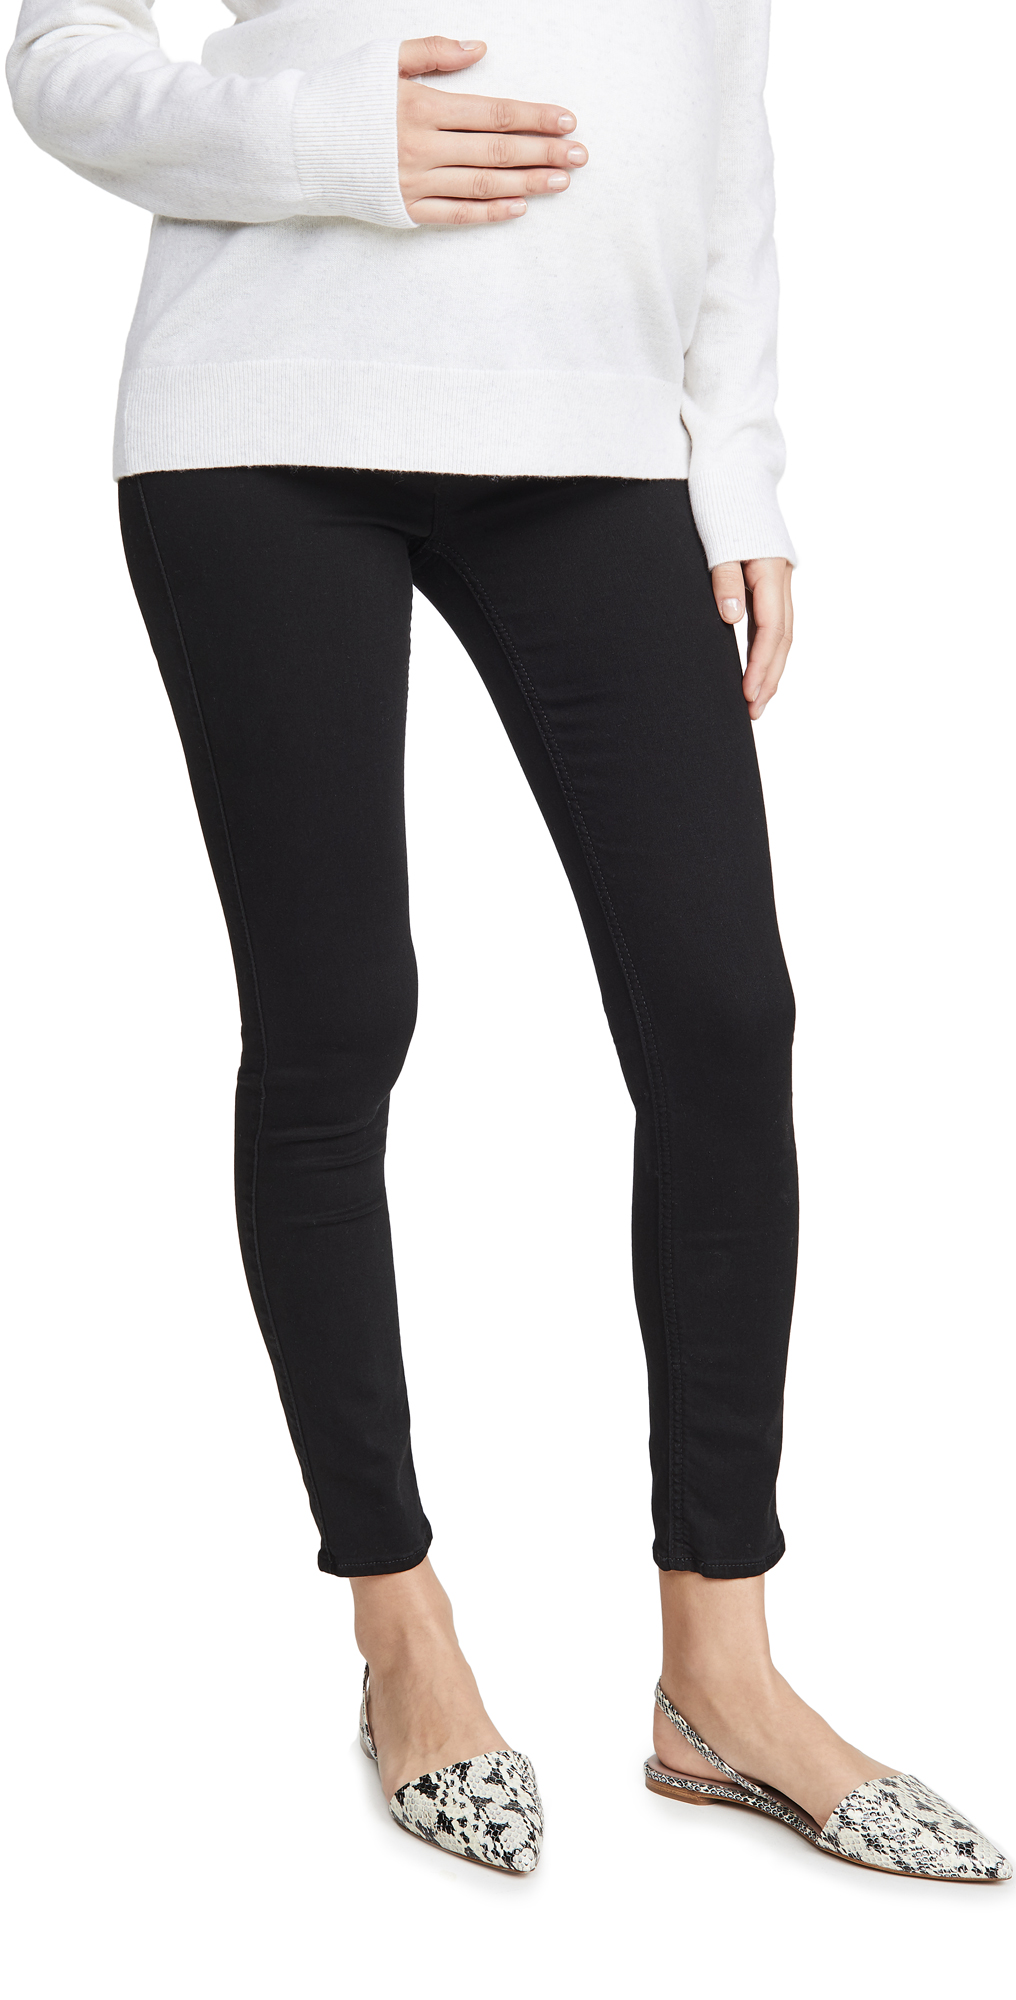 7 For All Mankind The Ankle Skinny Maternity Jeans